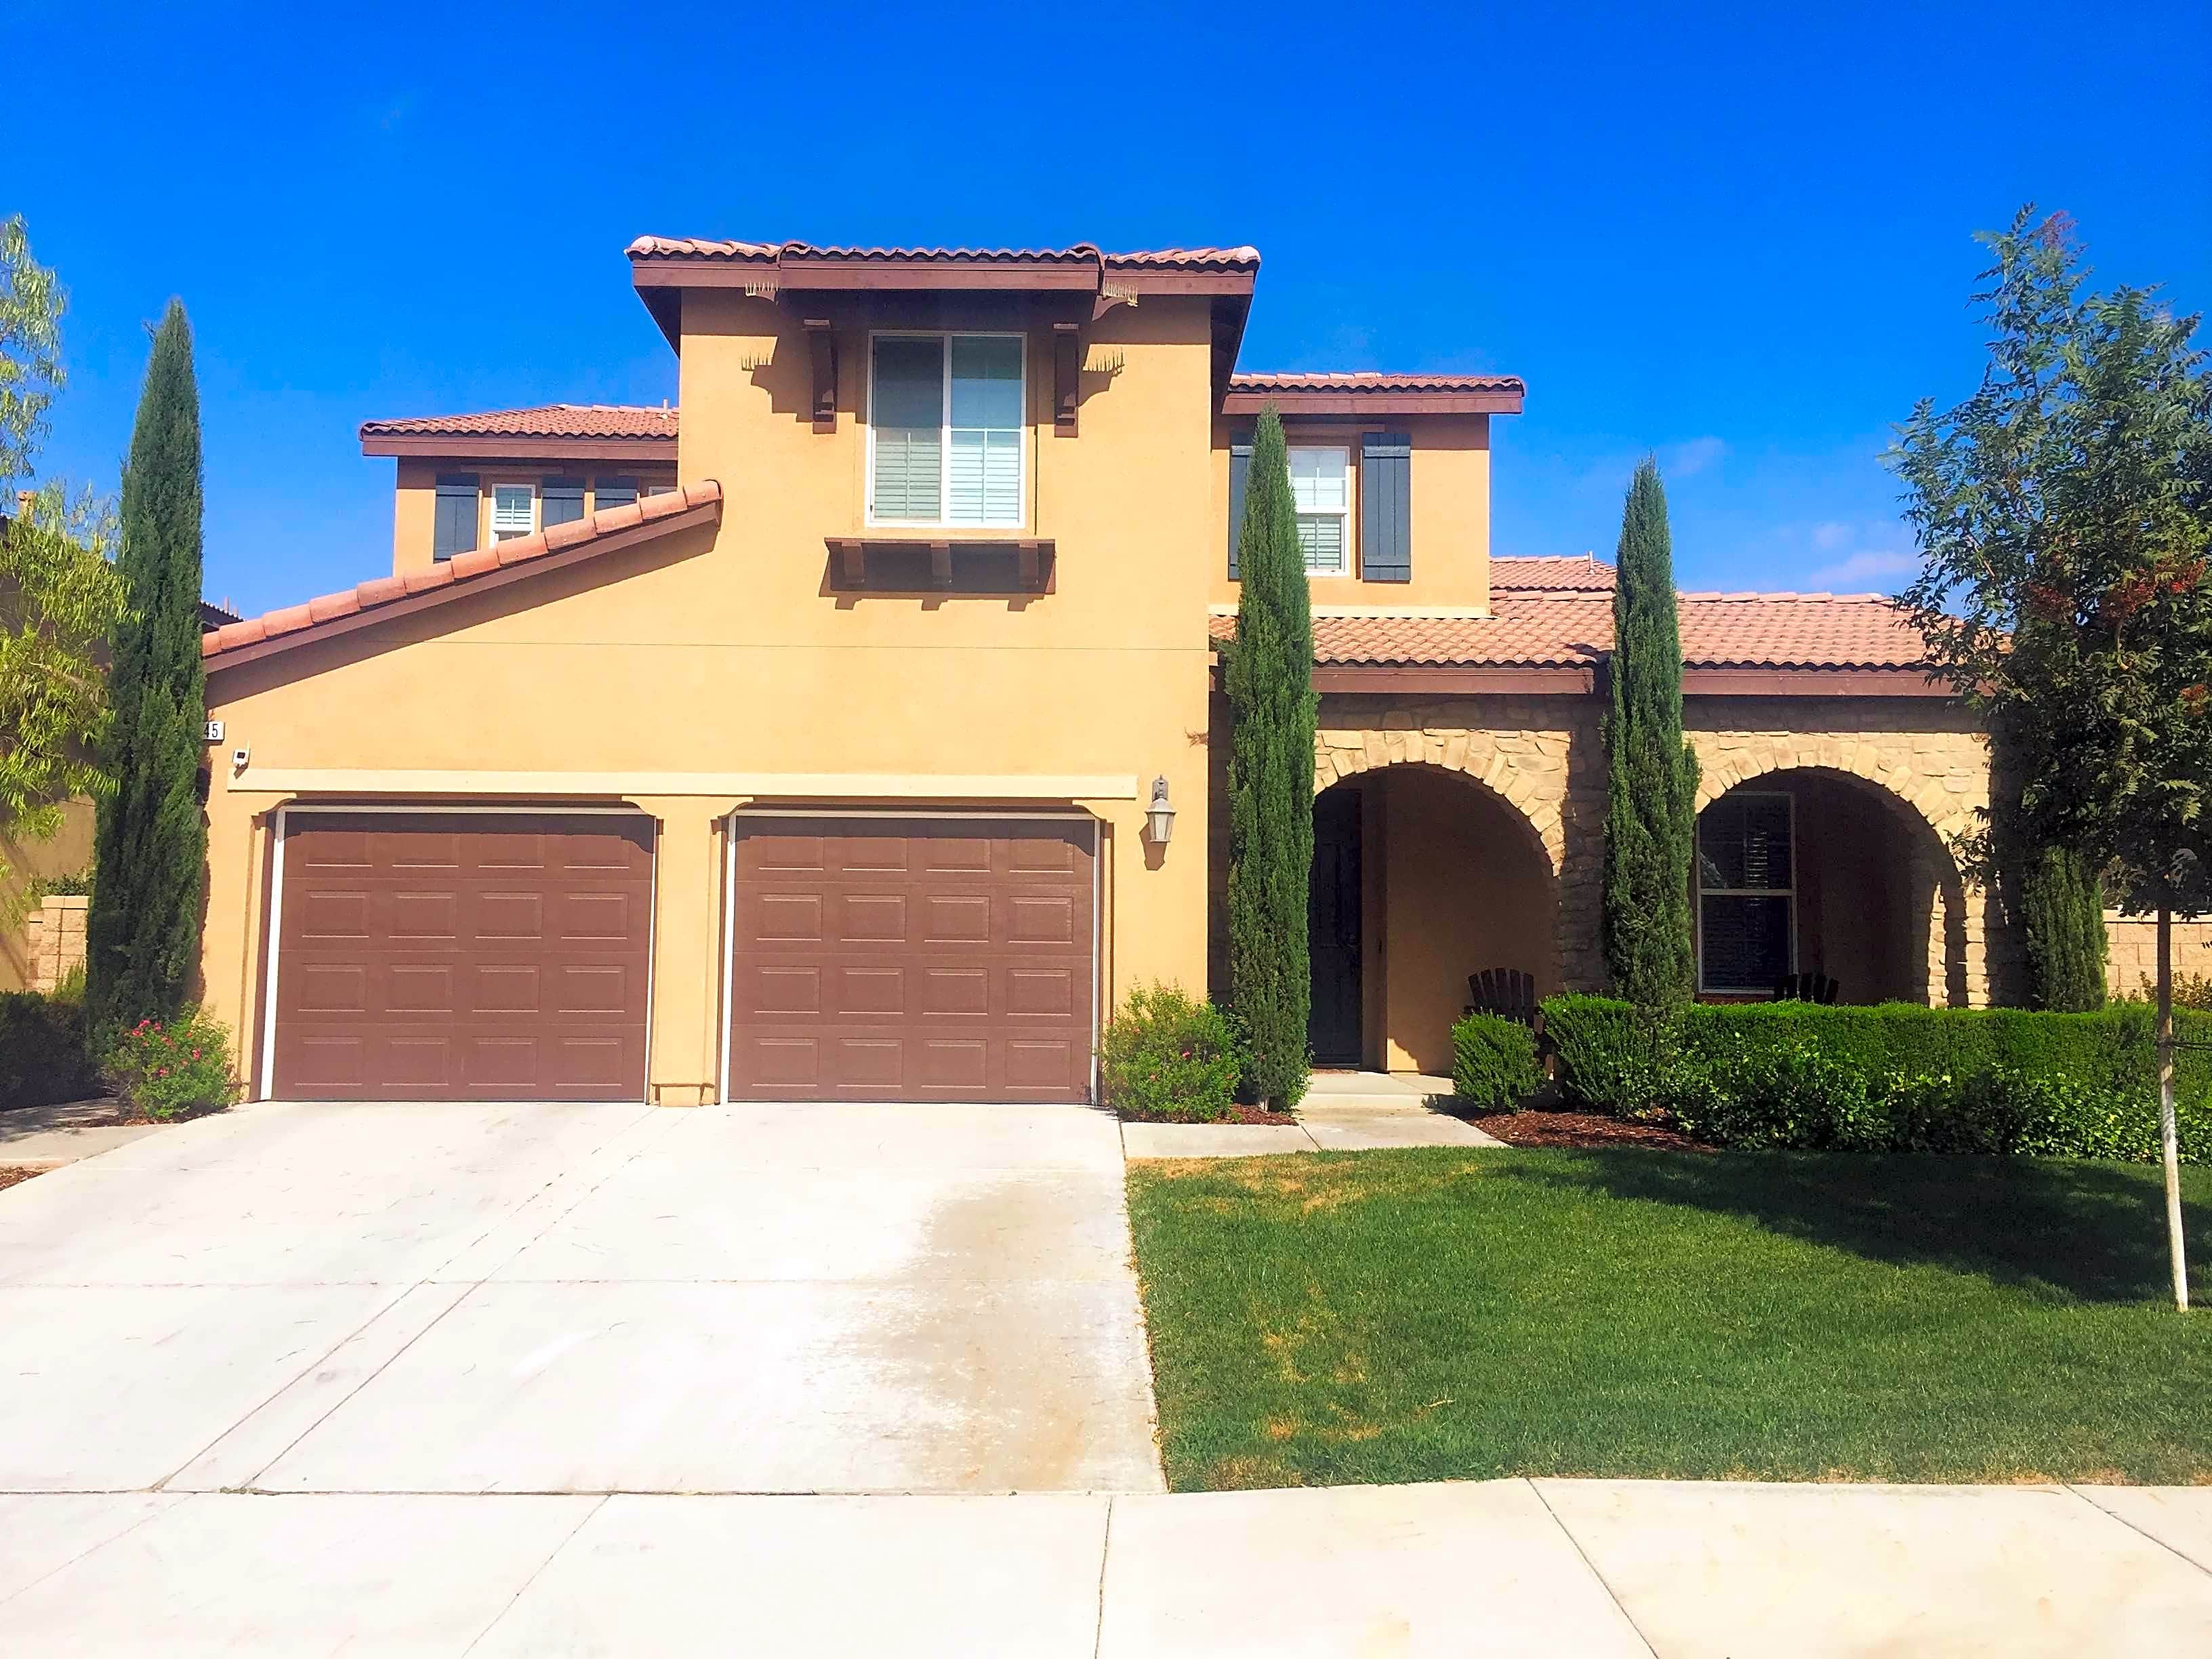 House for Rent in Murrieta